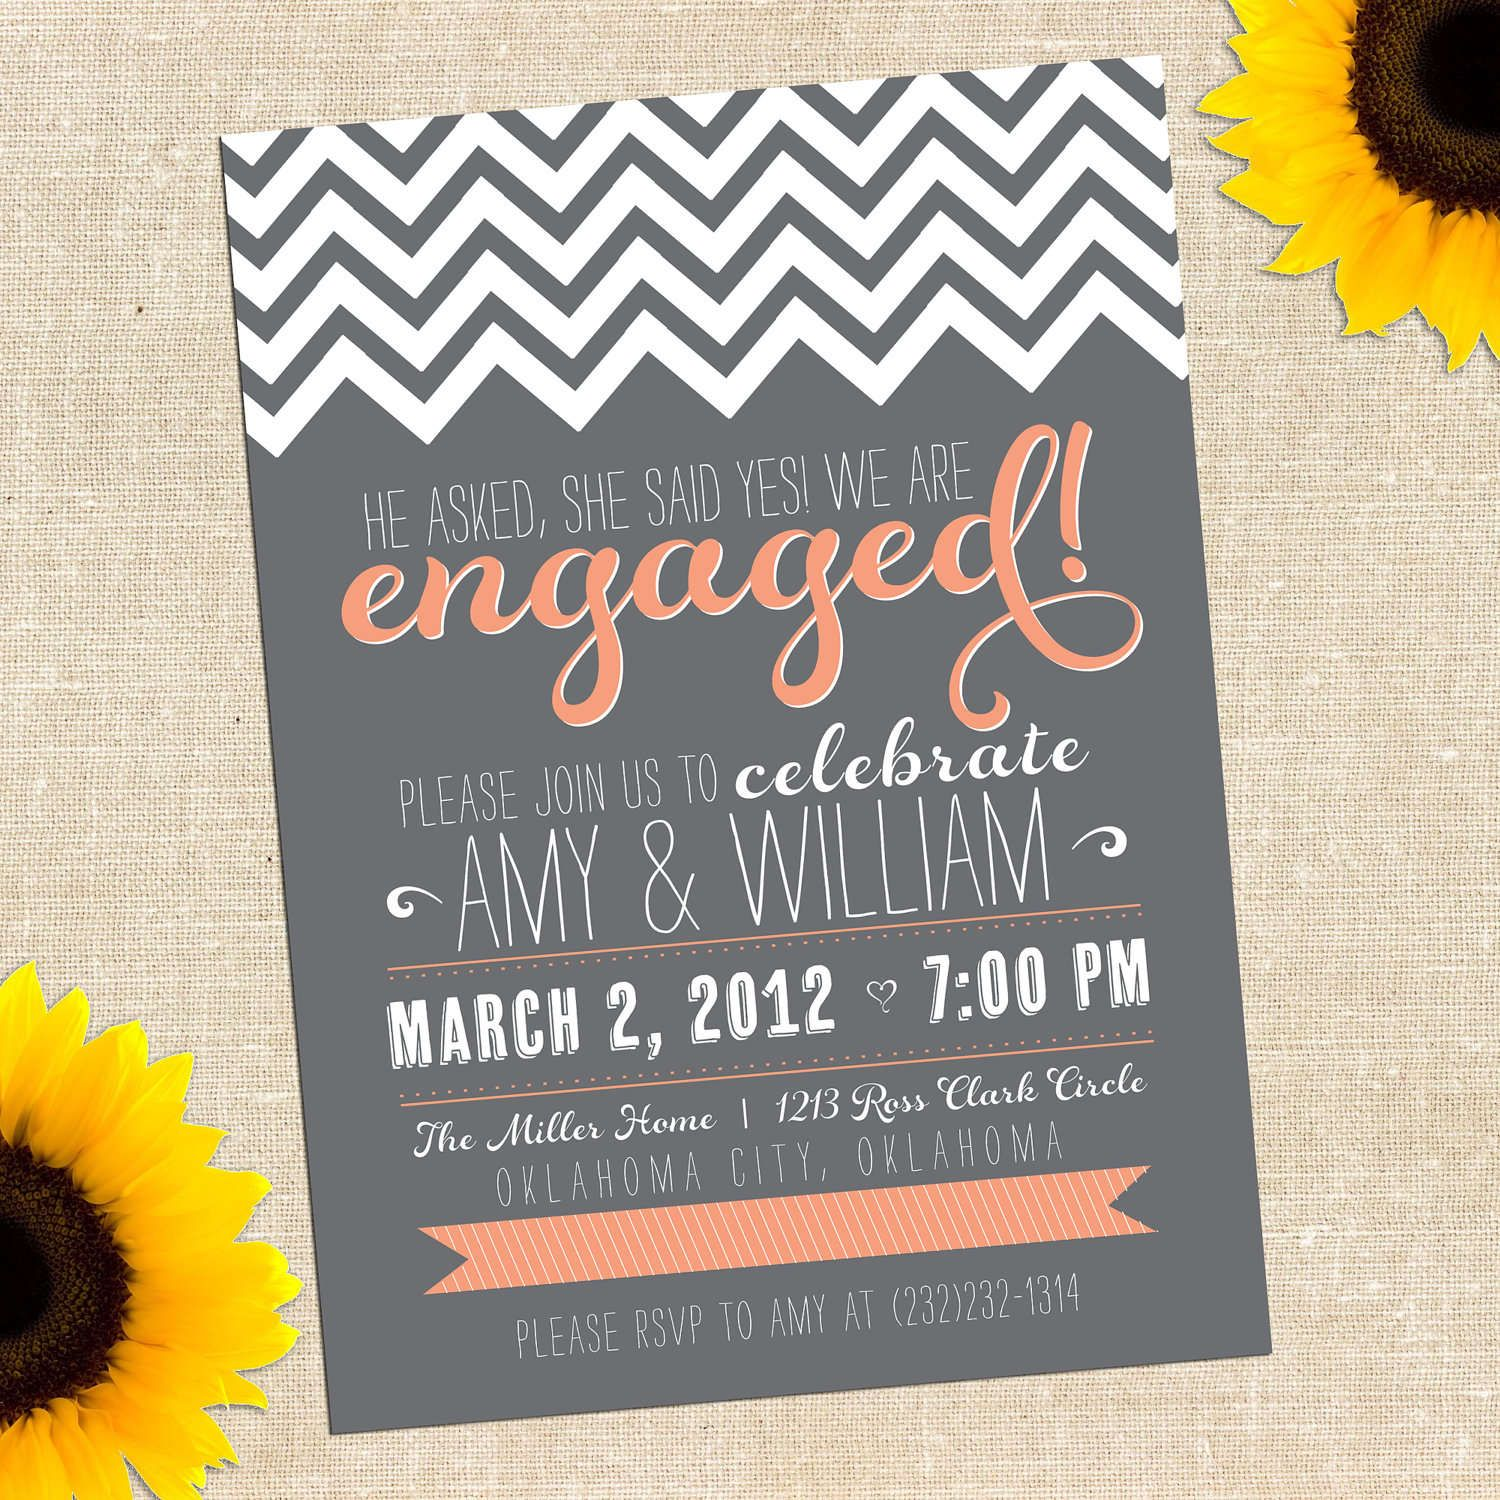 17 Best images about engagement invitations – Photo Engagement Party Invitations